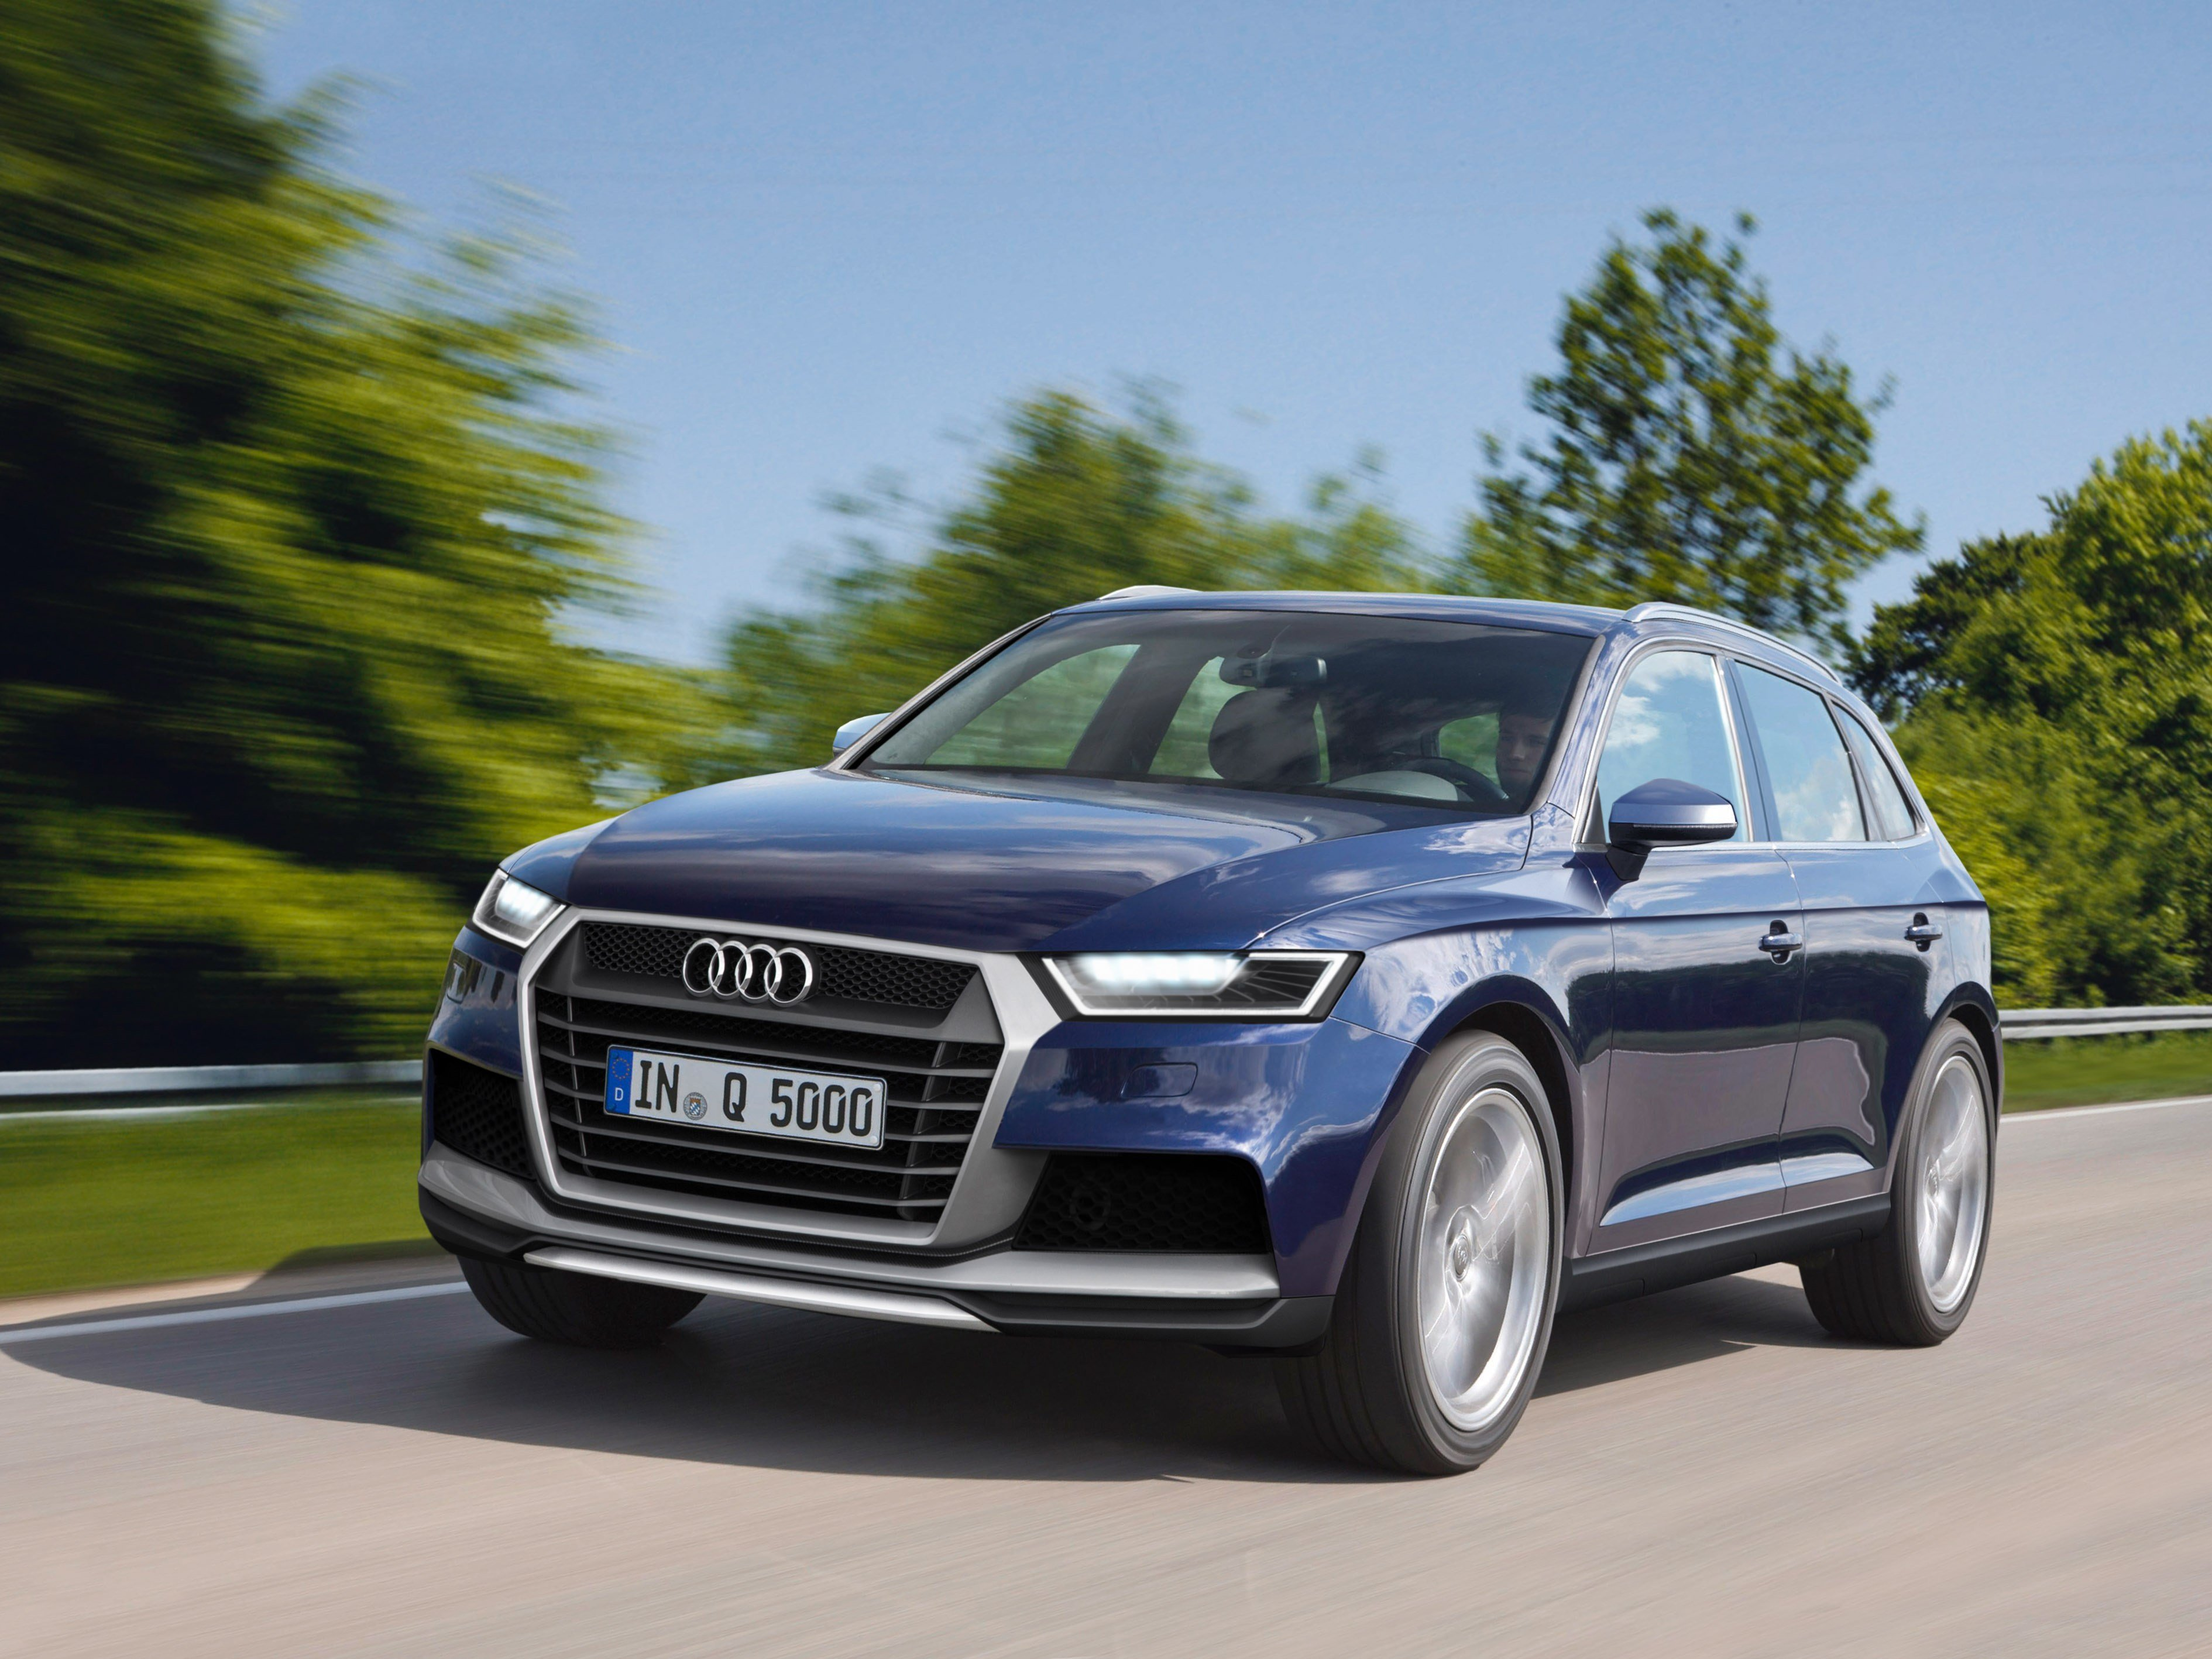 Latest 2016 Audi Q5 Teaser Pics Spy Shots And Exclusive Images Free Download